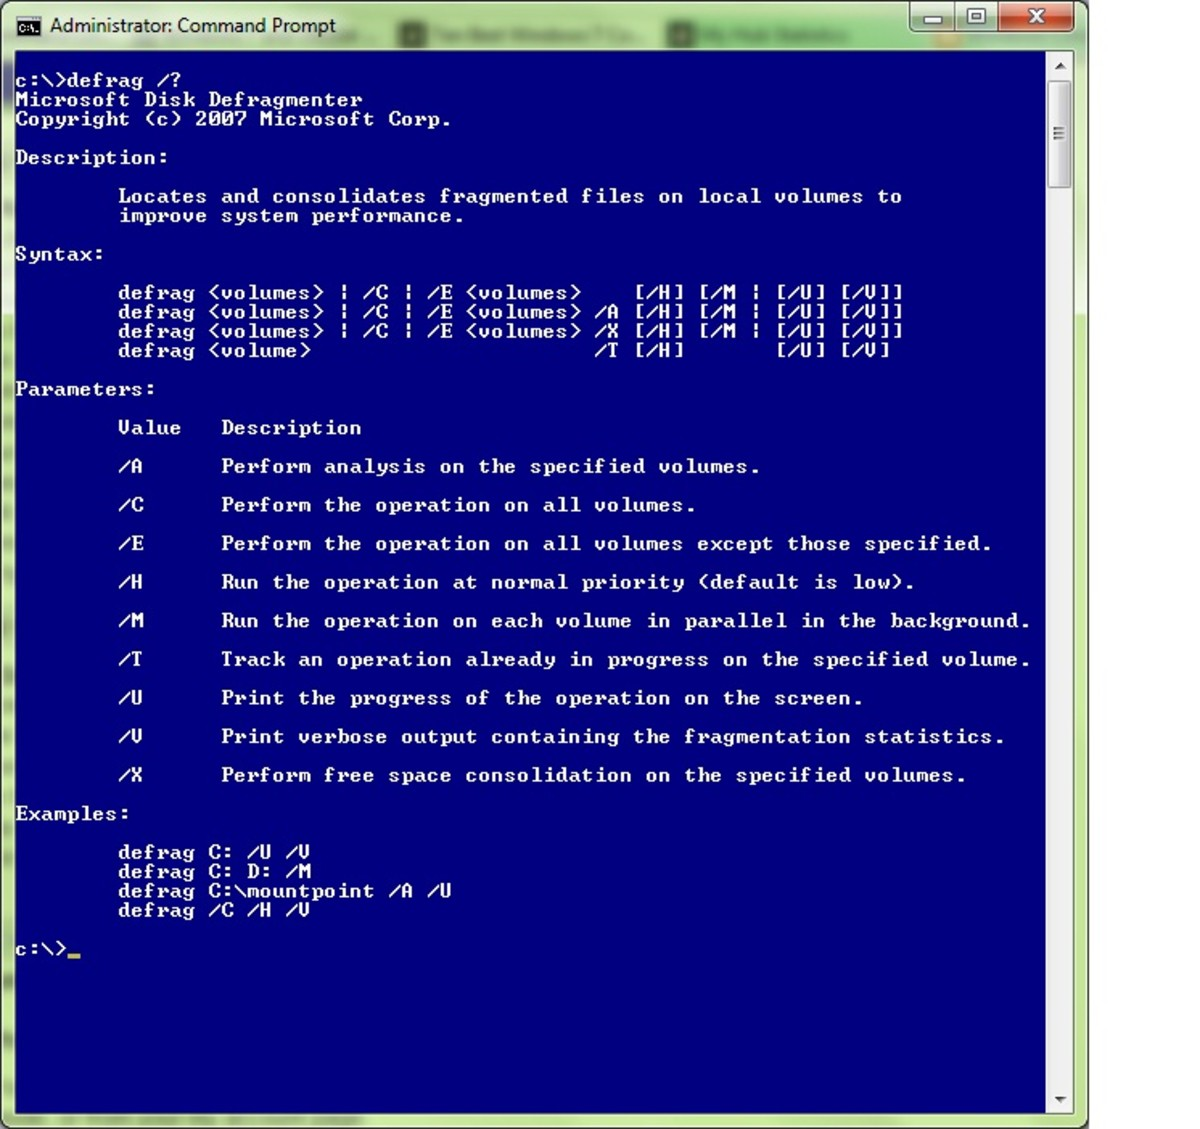 Did you know you can defrag right from the Windows 7 CMD Line?